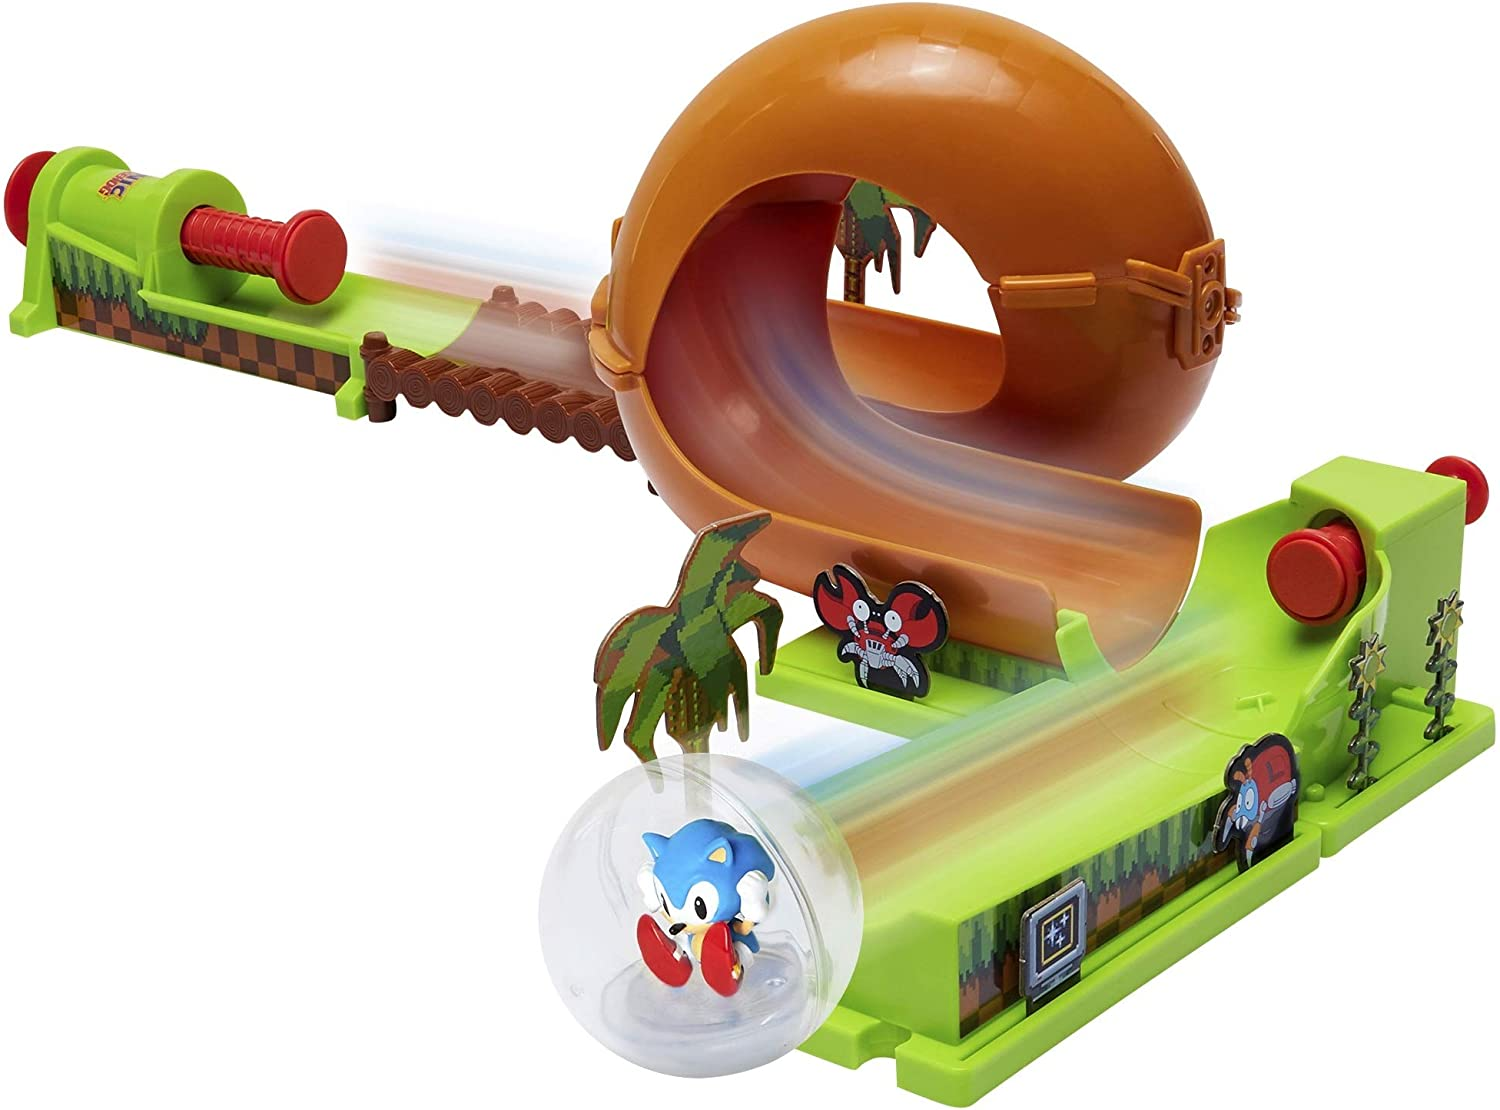 Amazon Com Sonic The Hedgehog Pinball Green Hill Zone Pinball Track Play Set 9 Piece With Looping Action Automatic Bumper Exclusive Sonic Sphere Included For Ages 3 Toys Games